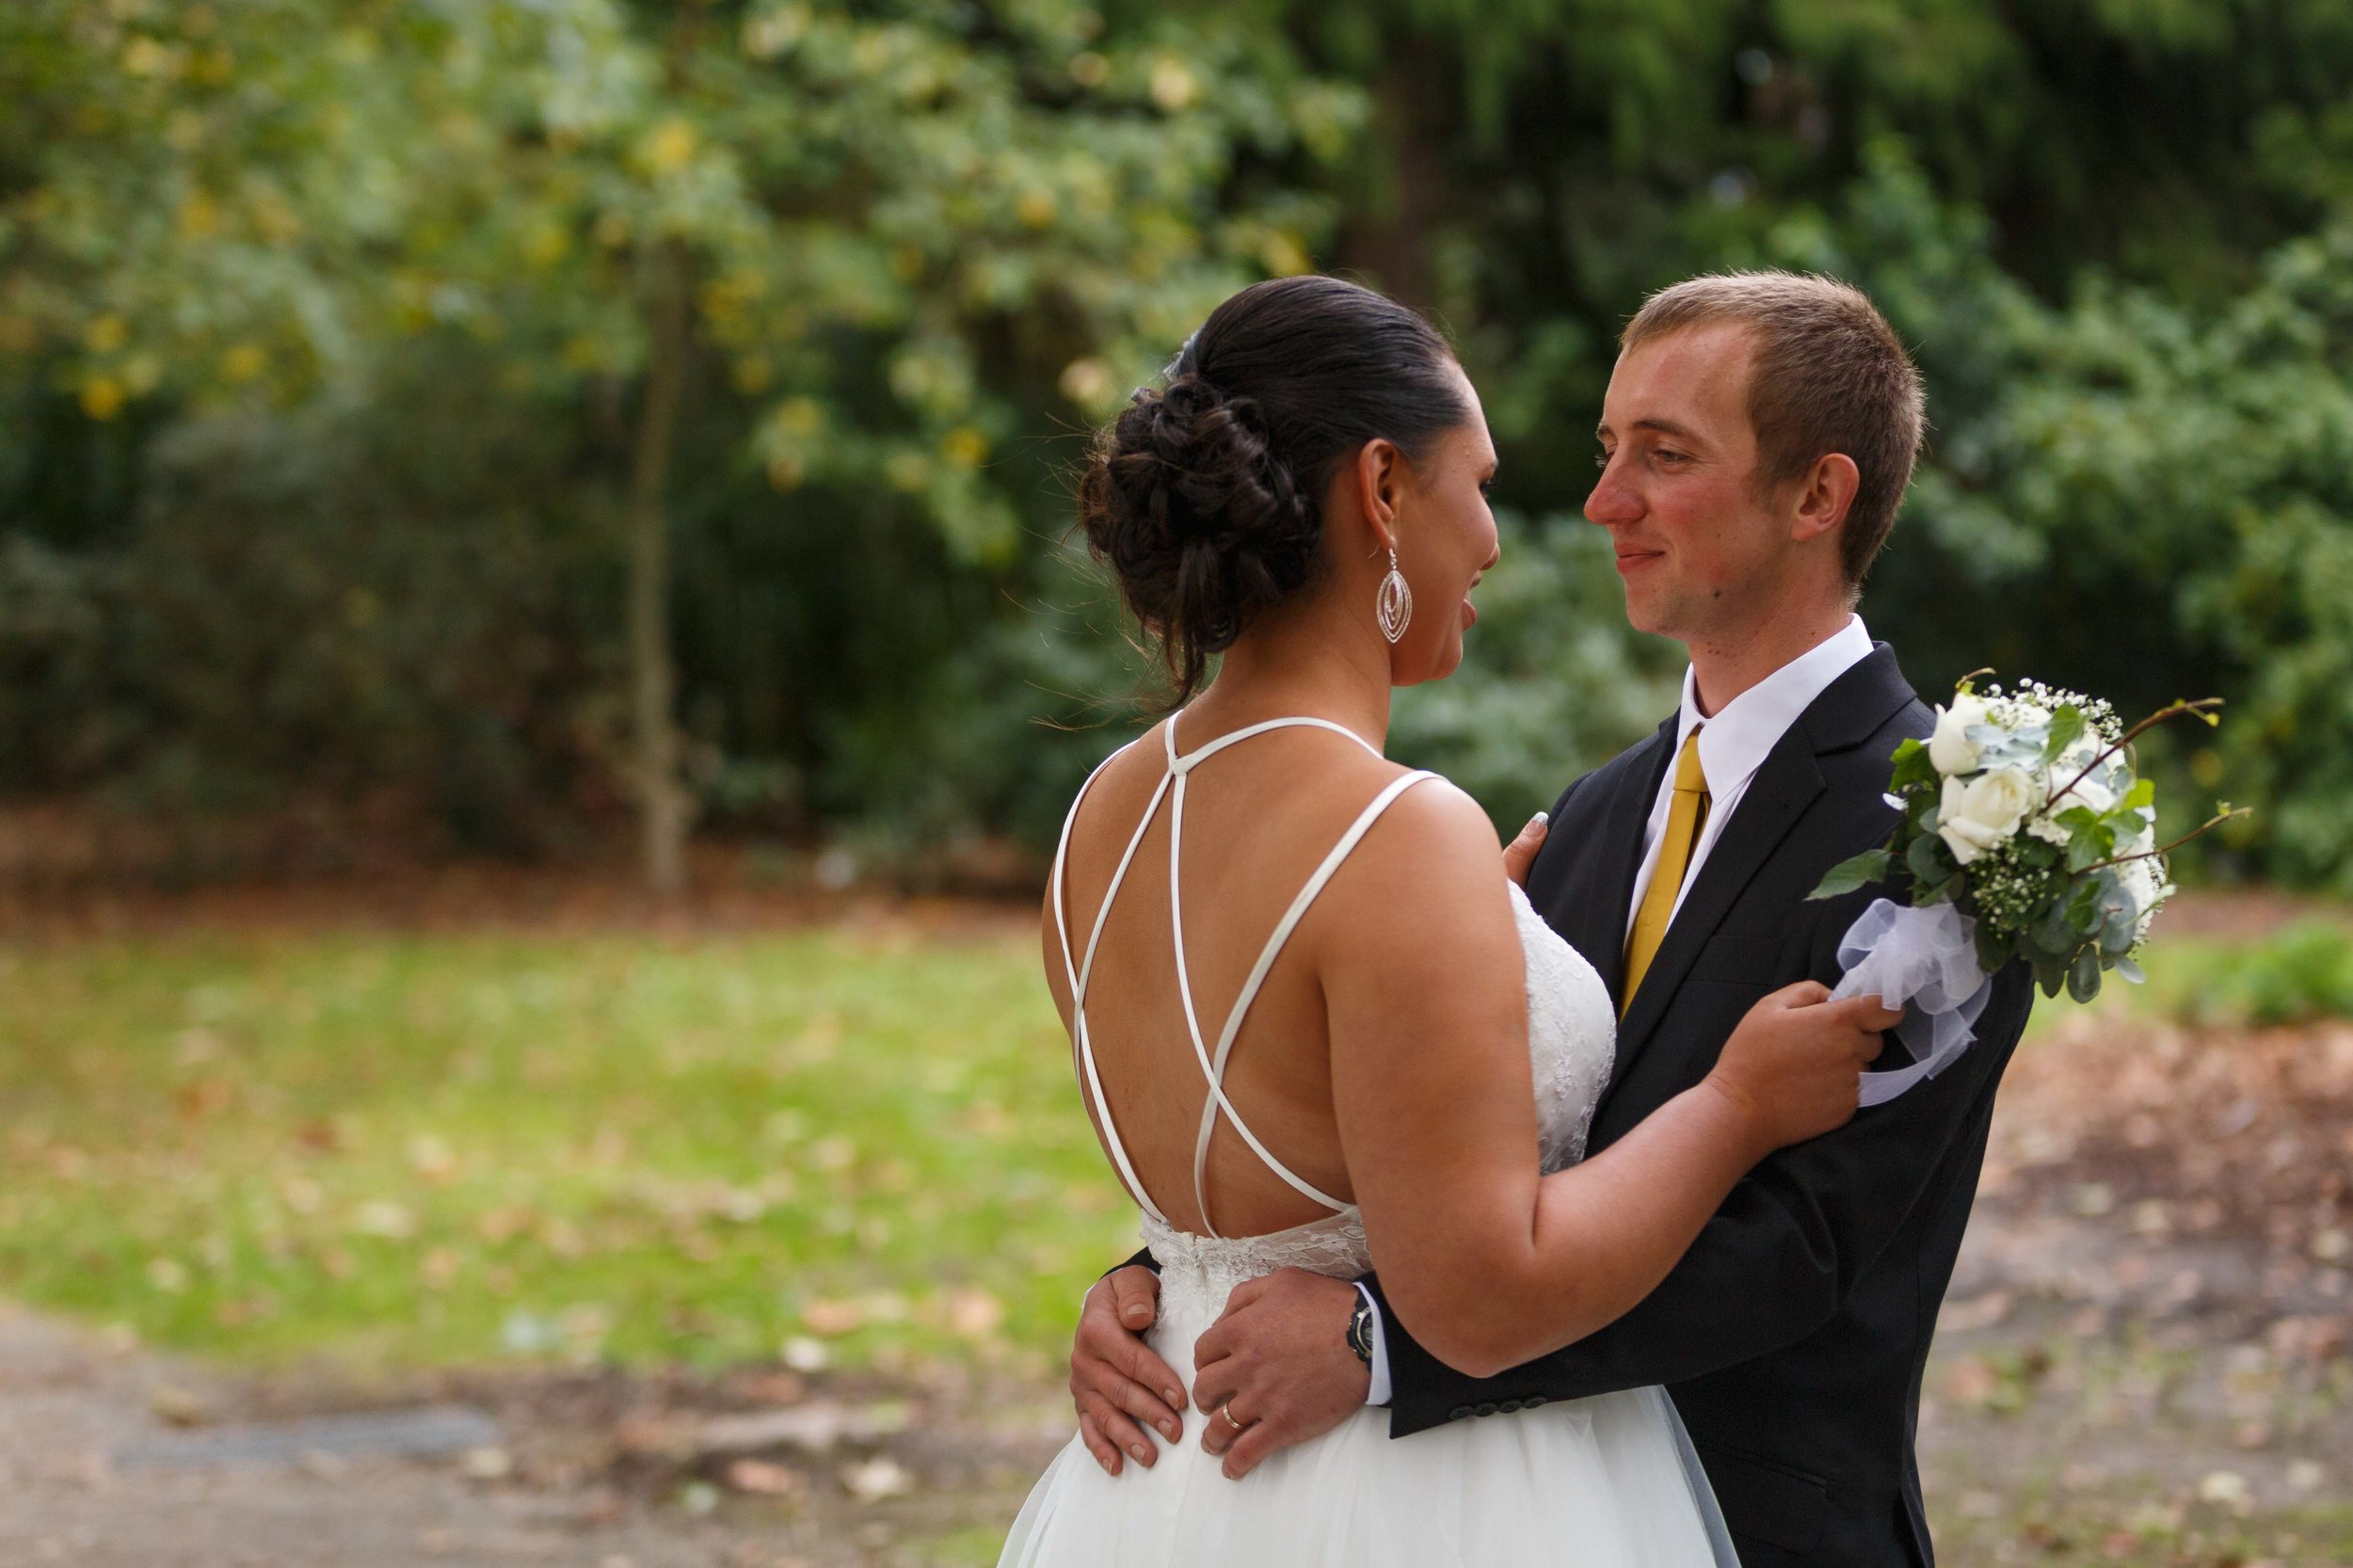 Highight-wedding-photography-the-chalet-palmerston-north-new-zealand-68.jpg